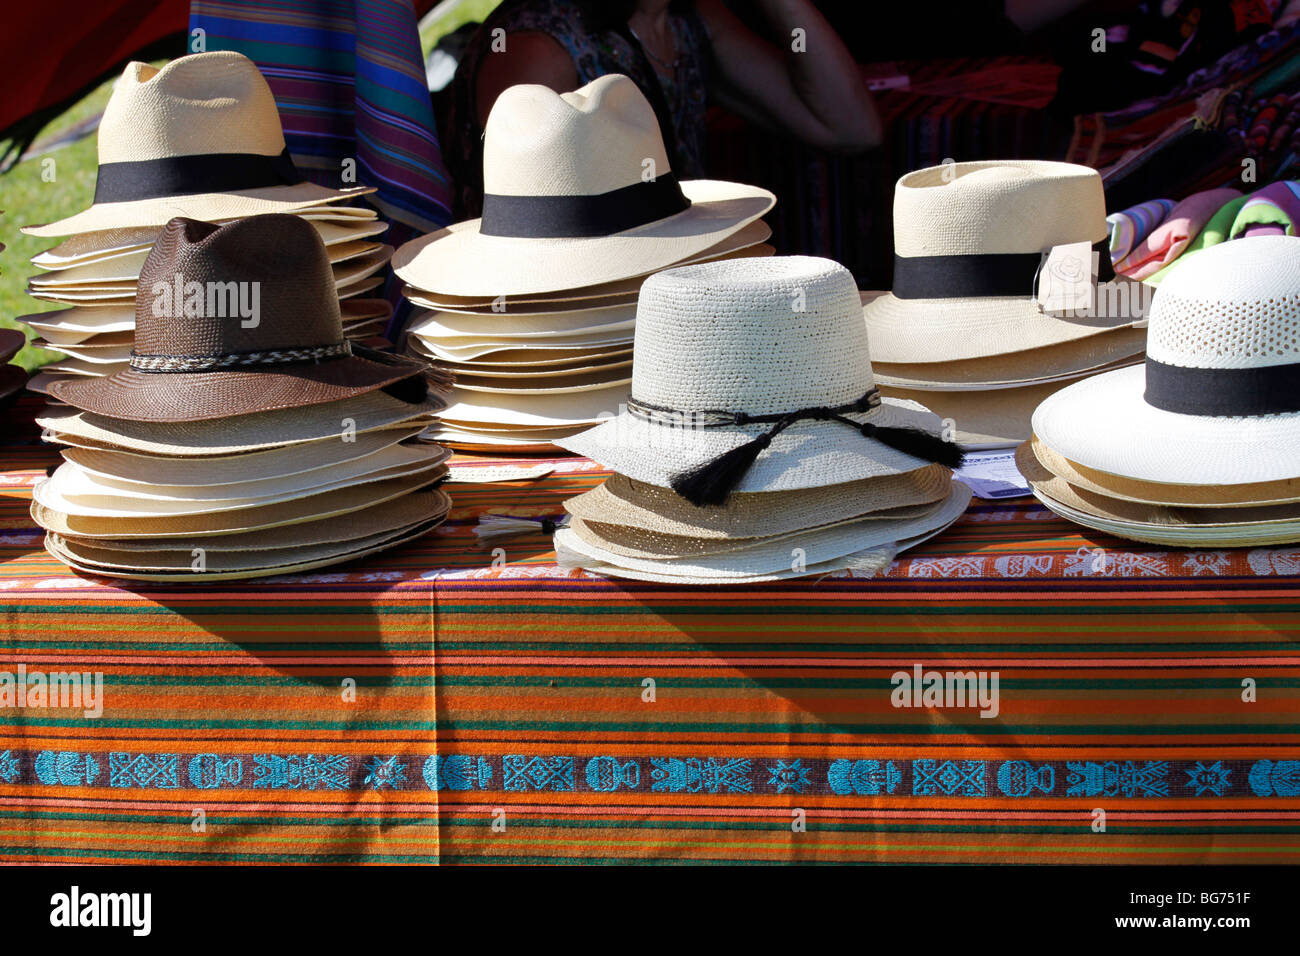 92fb7fa7d39504 Display of hats for sale at neighborhood market in Tokai near Cape Town.  Suretha Rous / Alamy Stock Photo